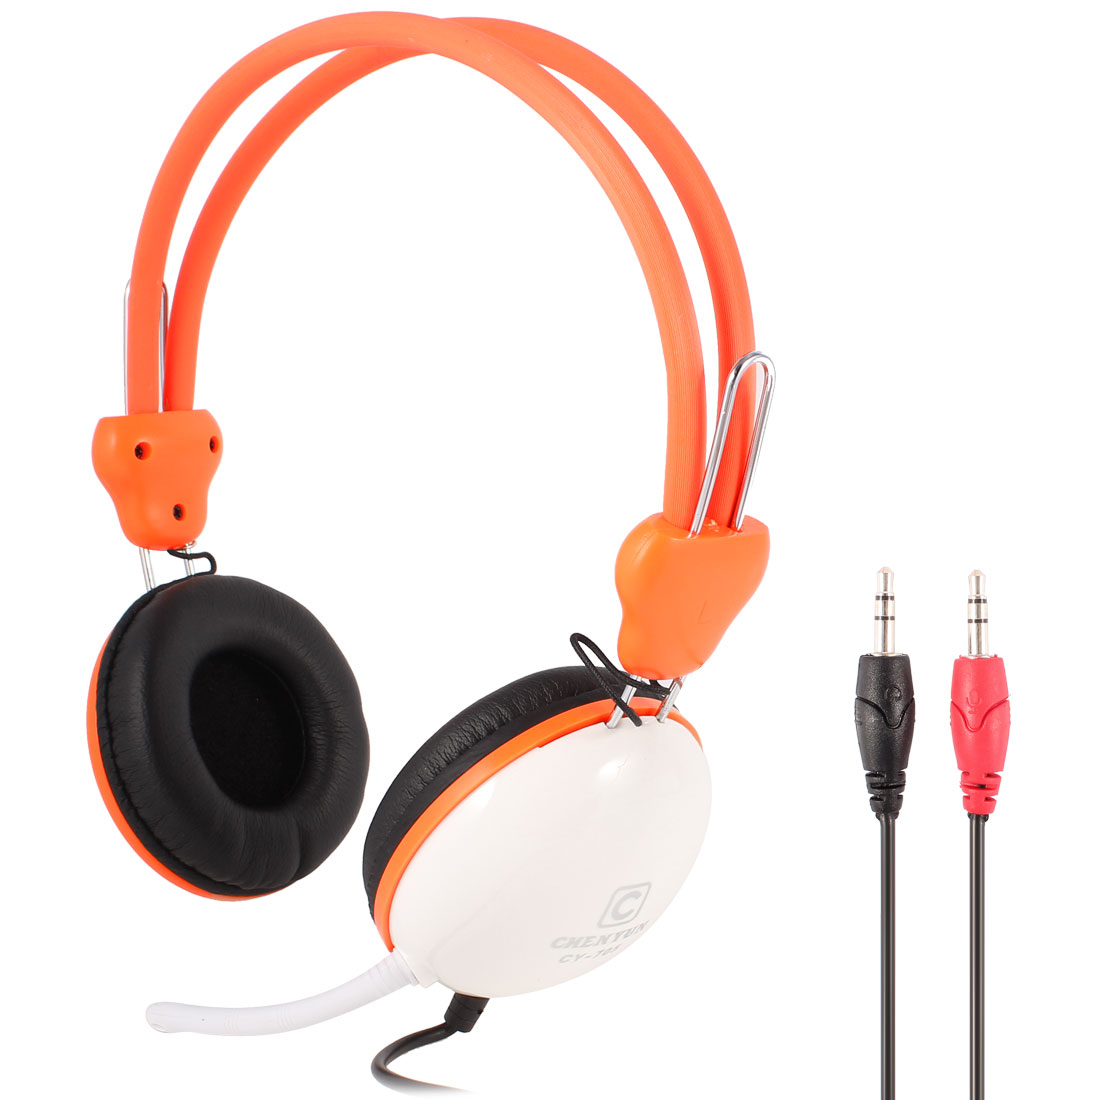 PC Computer Adjustable Headband 3.5mm Connector Headphone Orange White w Microphone